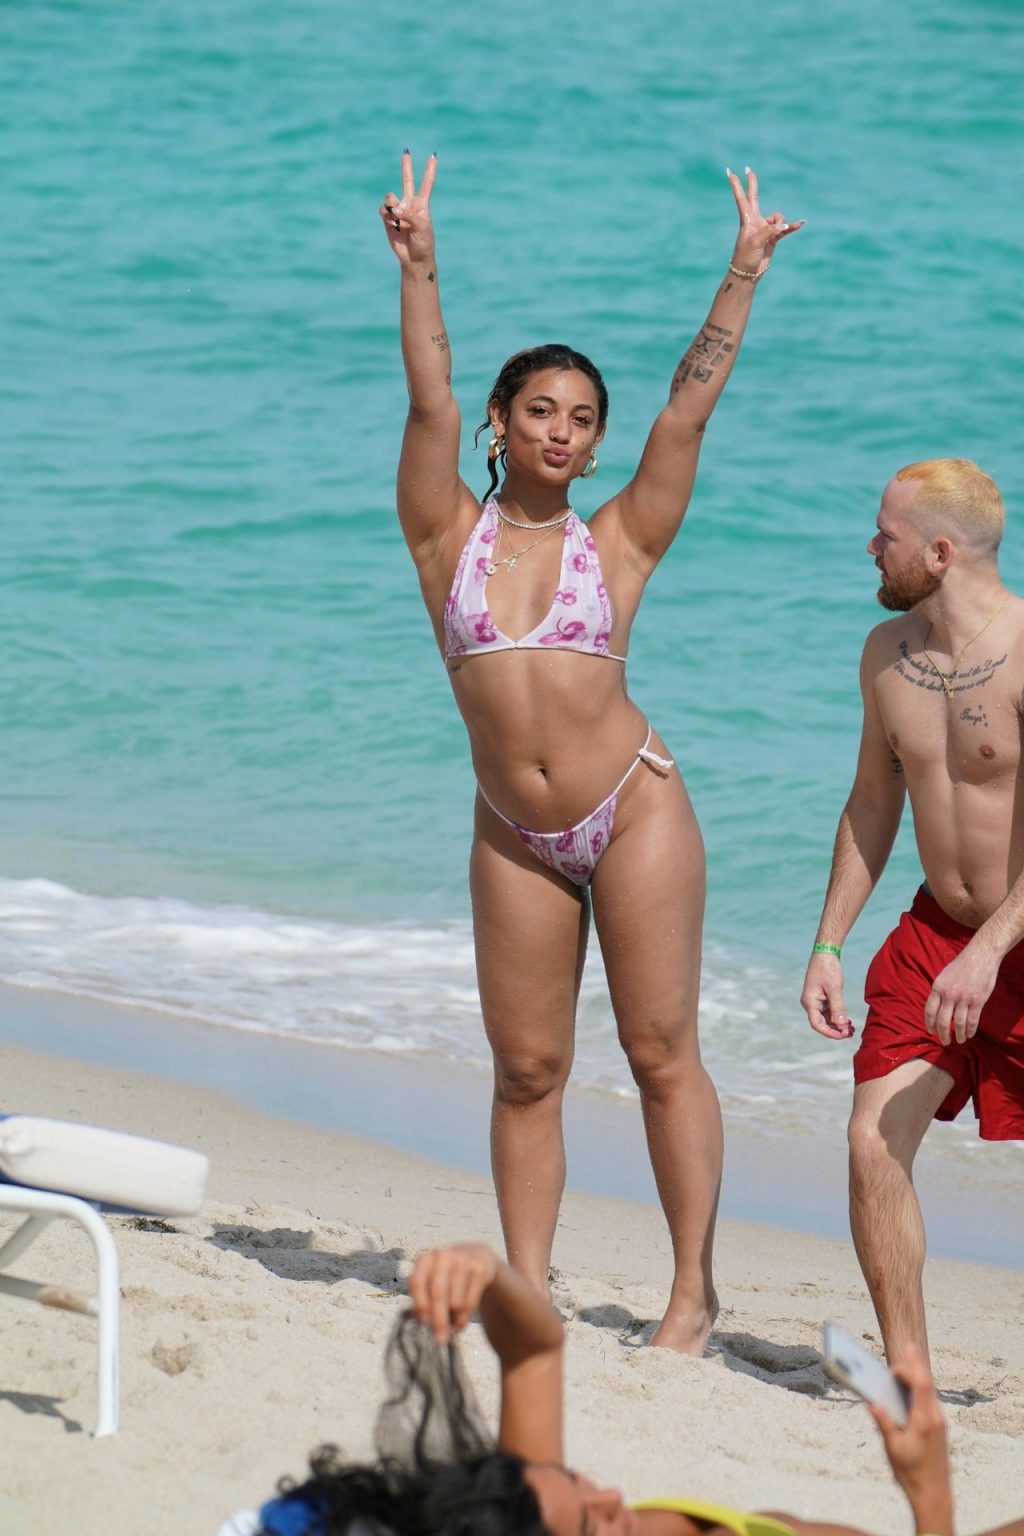 American Singer DaniLeigh Wows In A Bikini At The Beach In Miami (20 Photos)